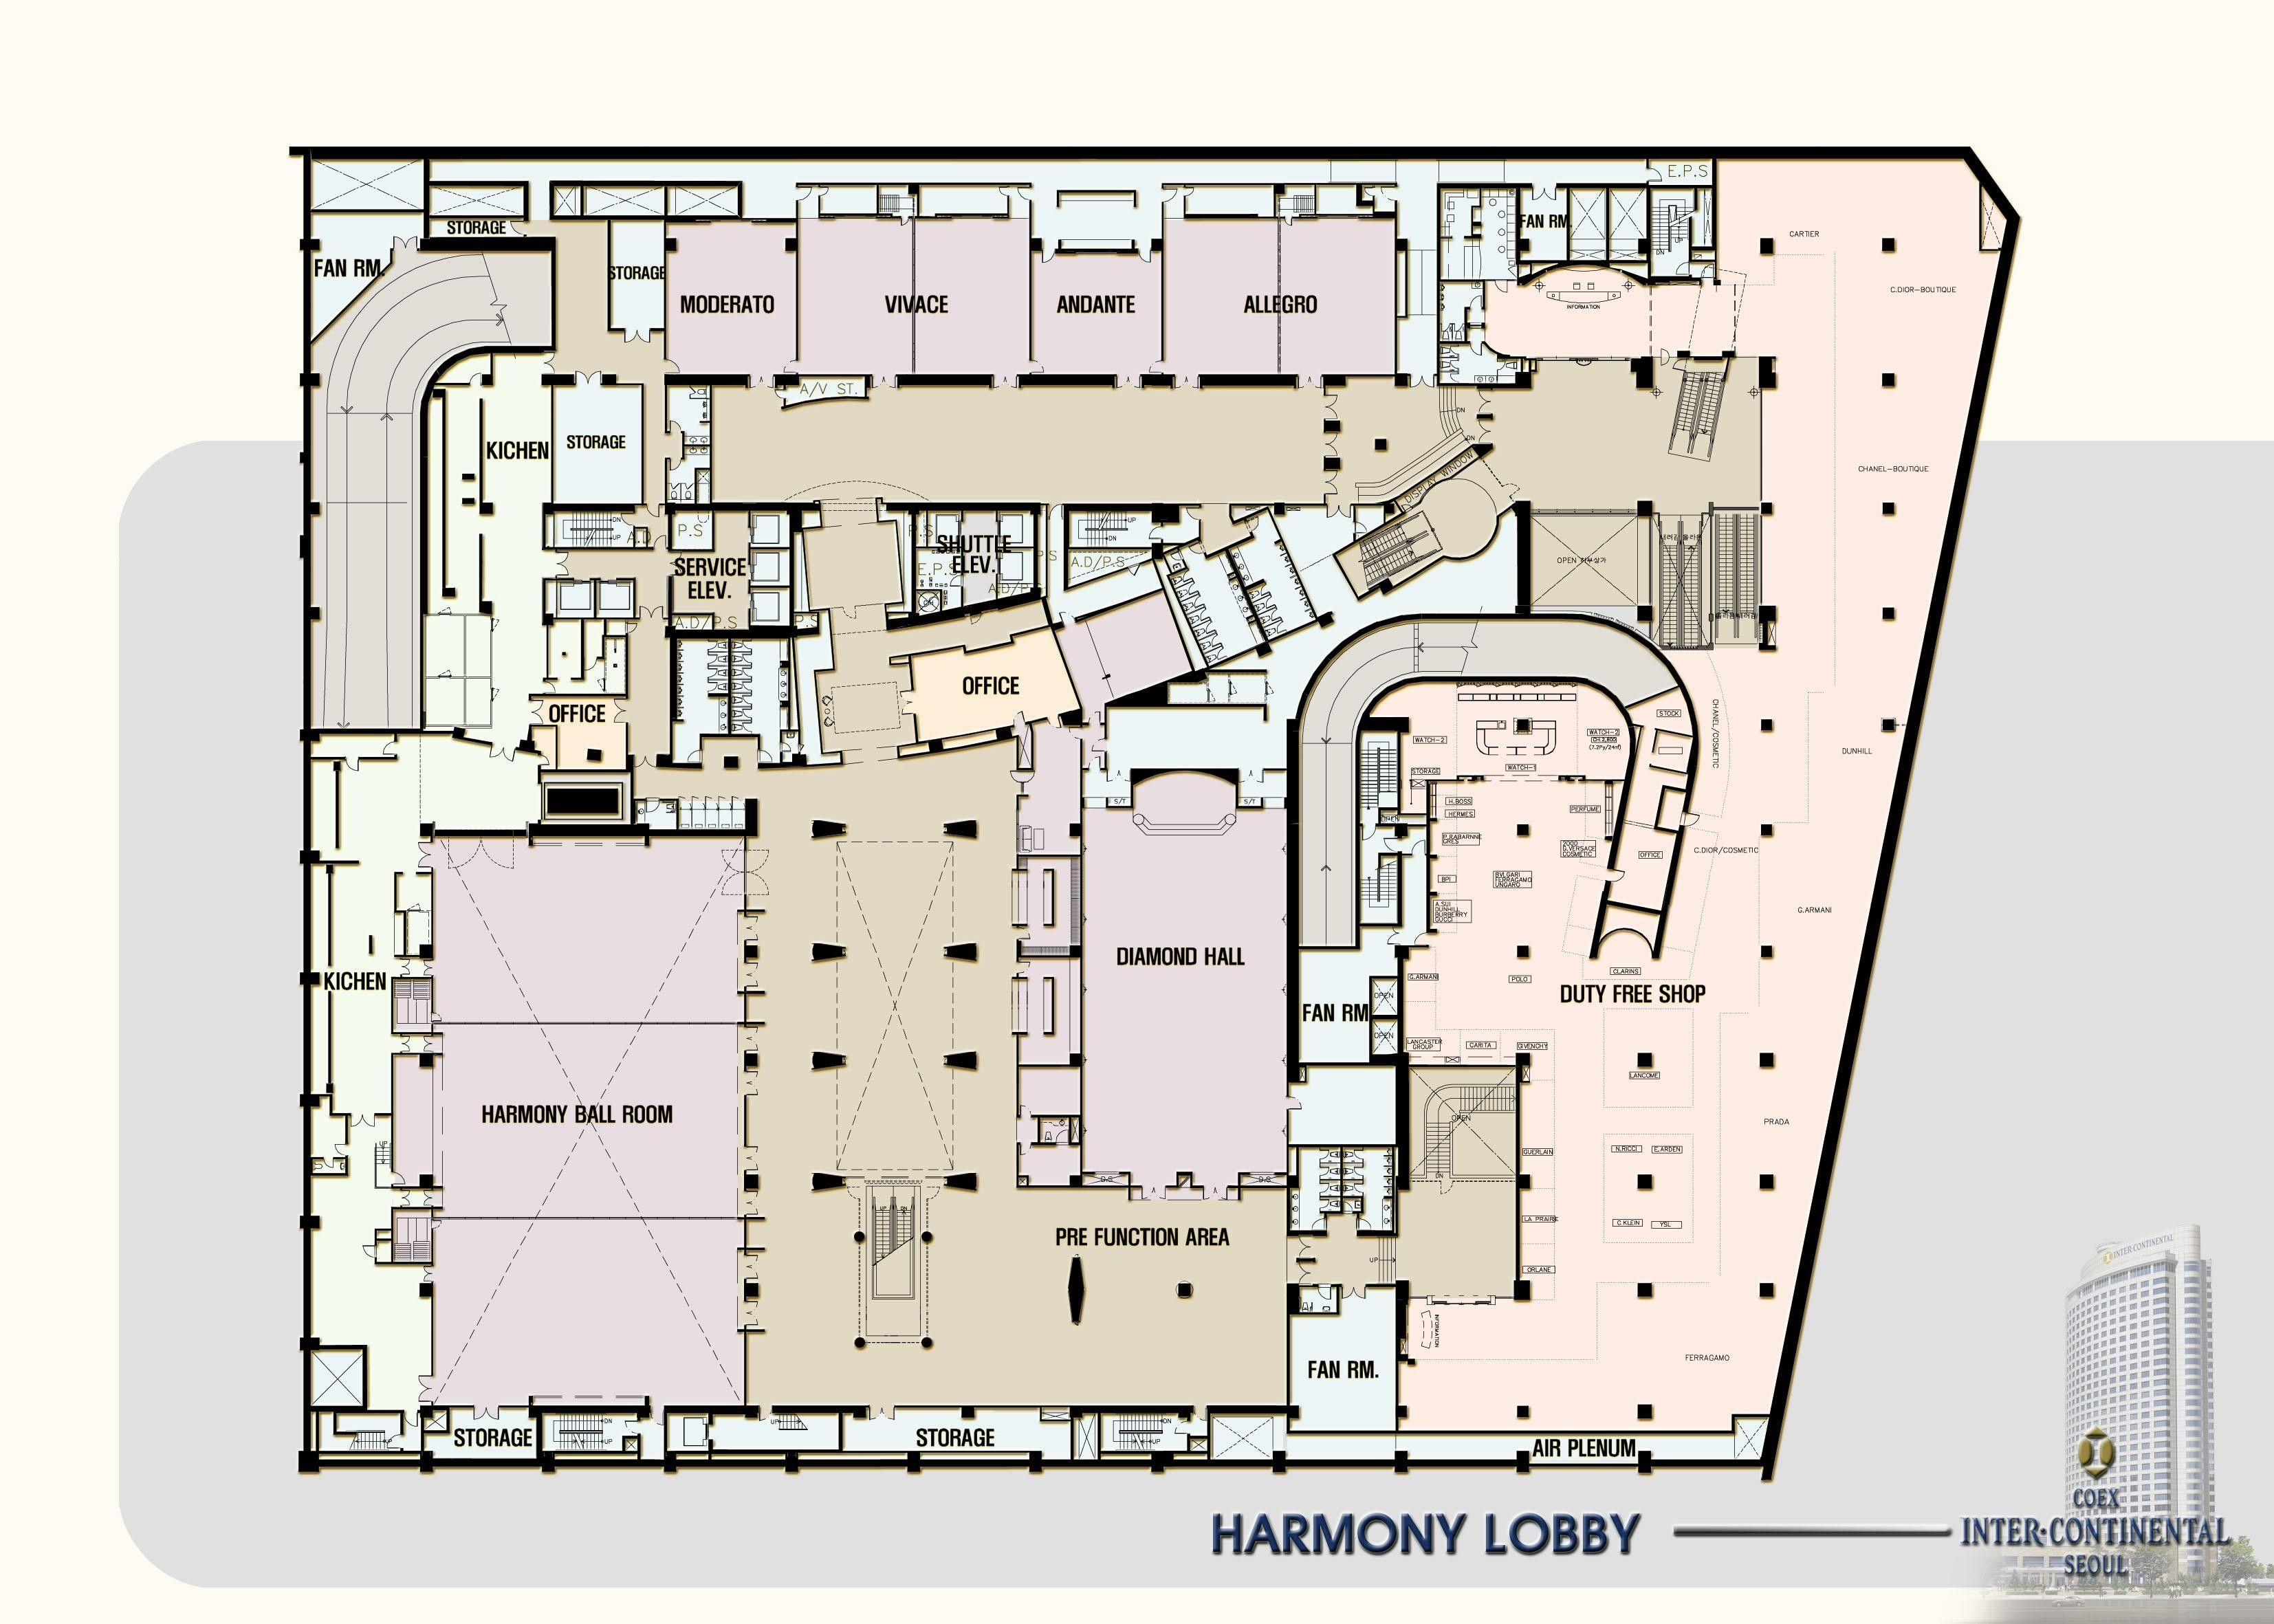 Hotel lobby floor plan google search hotel design for Hotel plan design